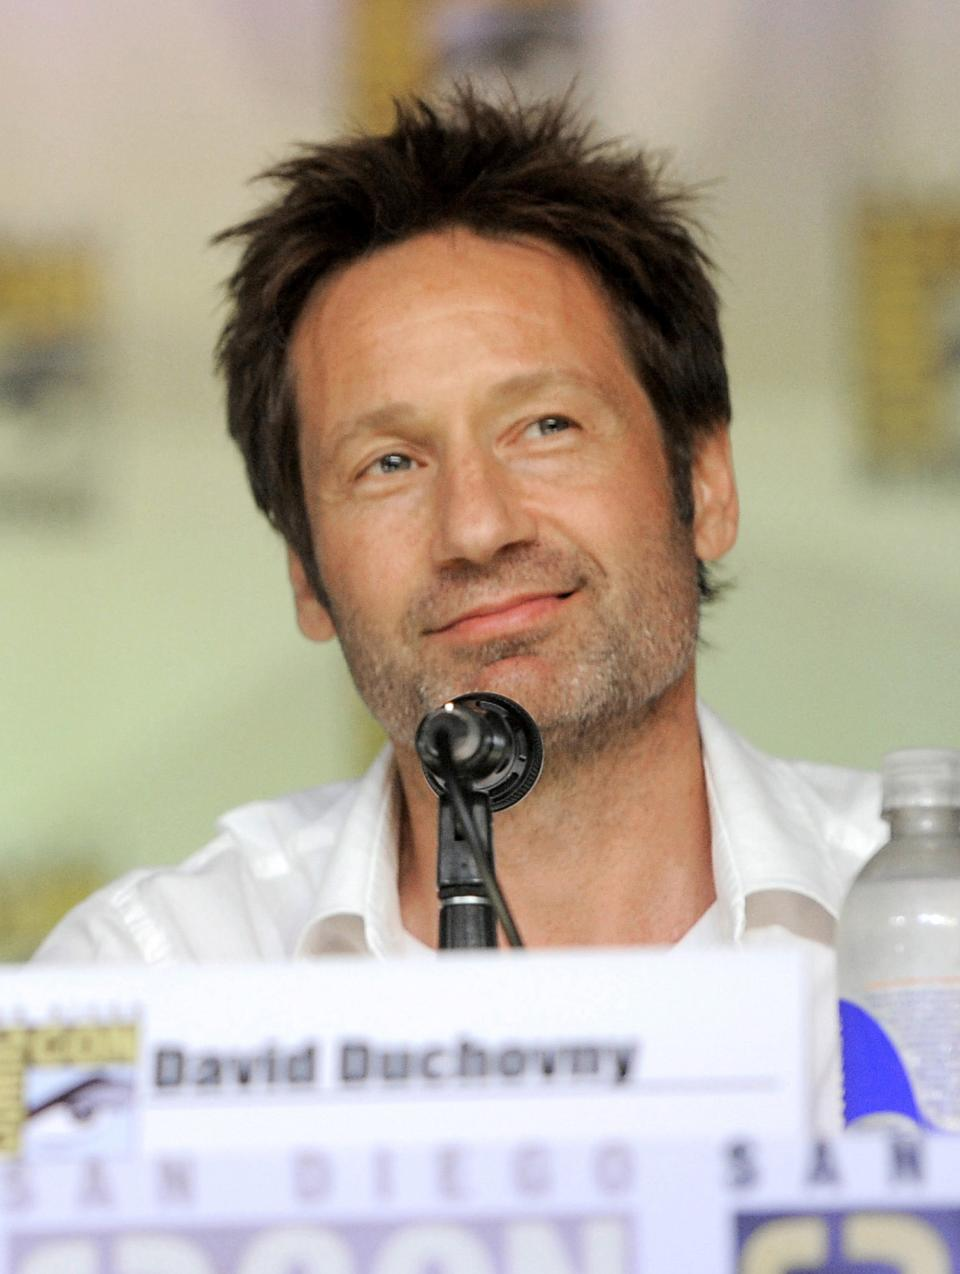 "David Duchovny attends the ""The X Files"" 20th Anniversary panel on Day 2 of Comic-Con International on Thursday, July 18, 2013 in San Diego, Calif. (Photo by Chris Pizzello/Invision/AP)"